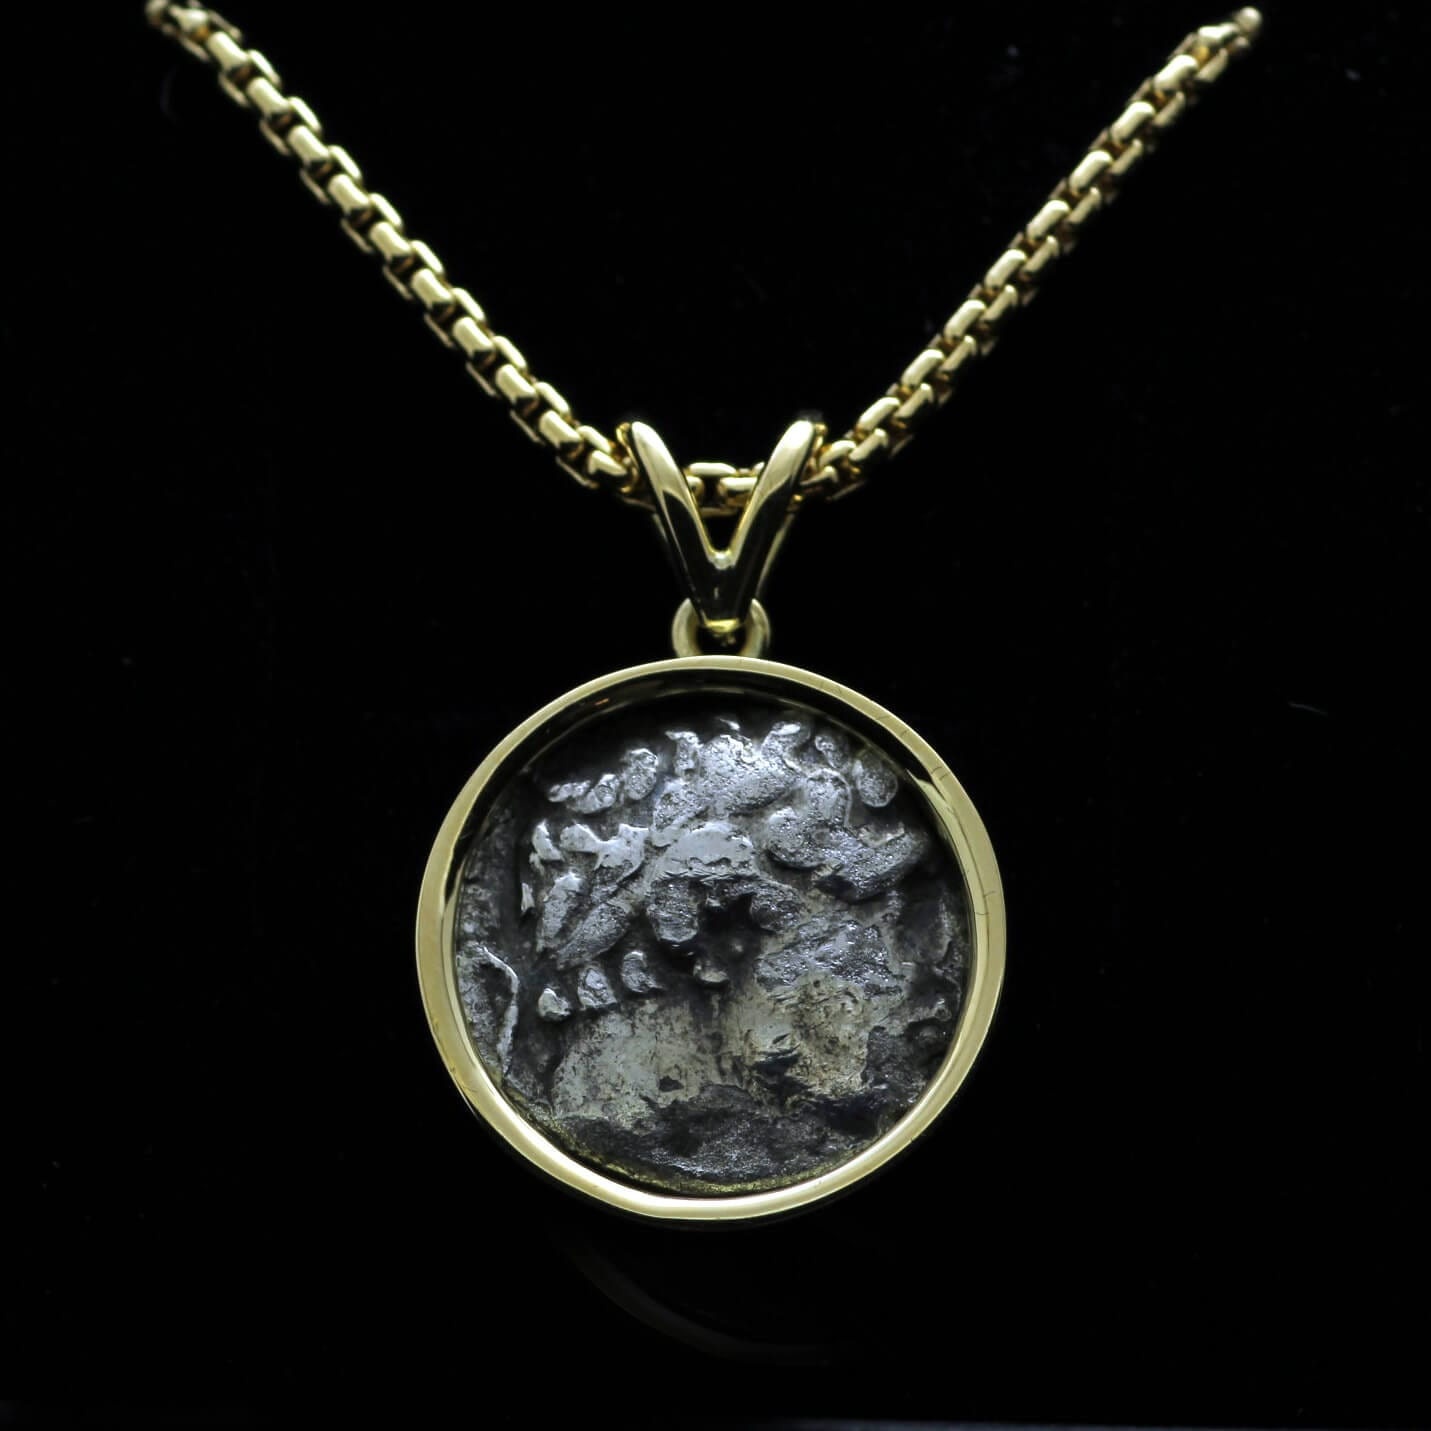 Unique bespoke necklace in Yellow Gold with Antique coin by Julian Stephens